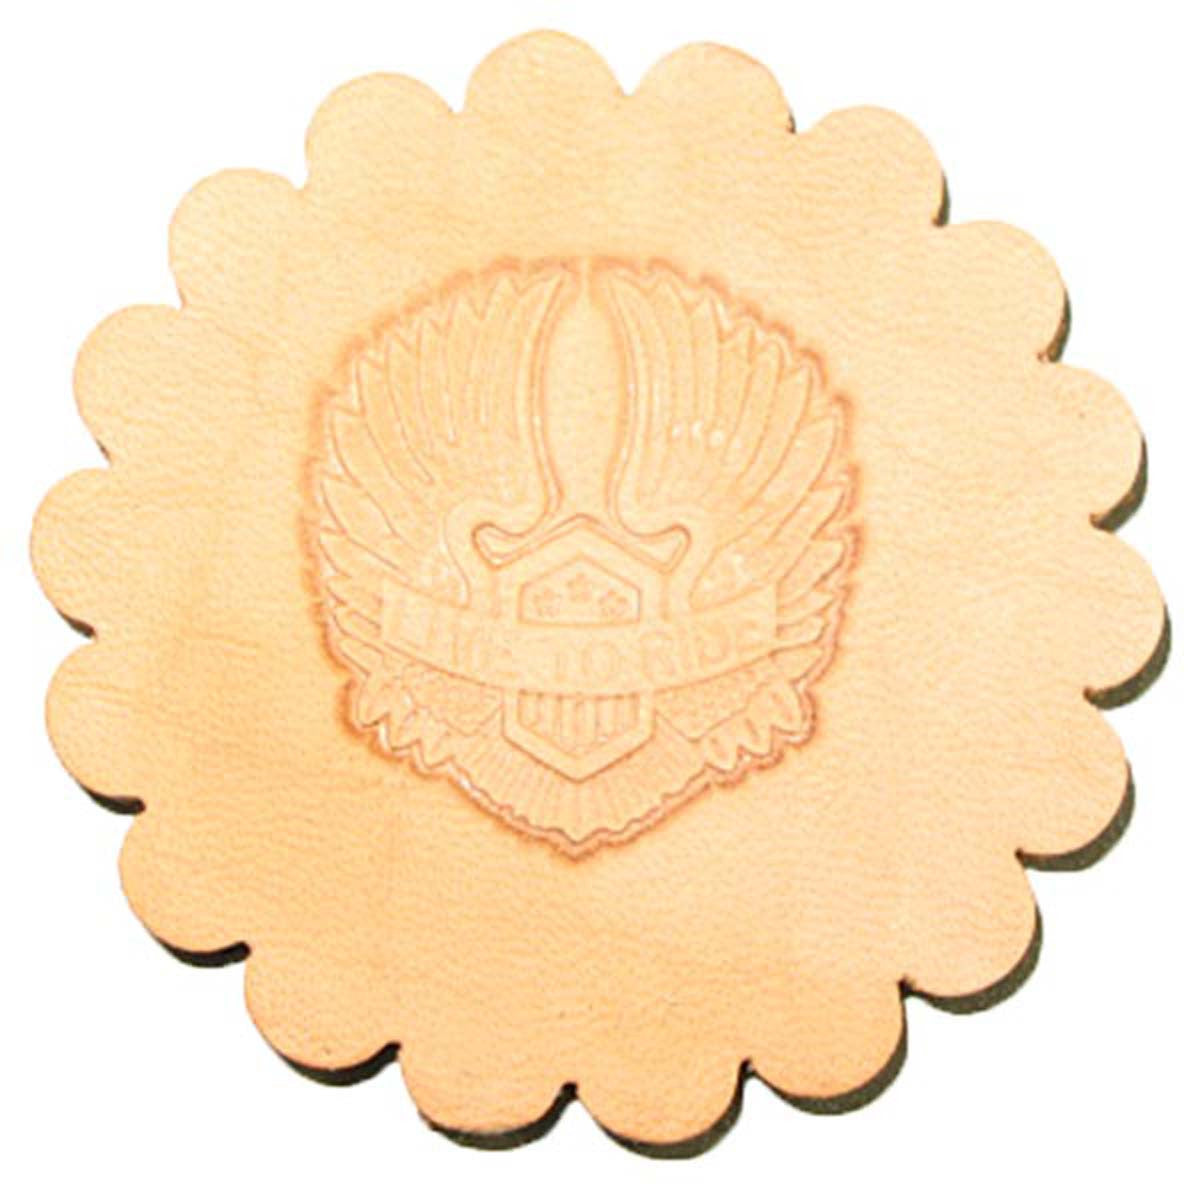 Image of 8540-00 - Motorcycle Wings 3-D Stamp 8540-00